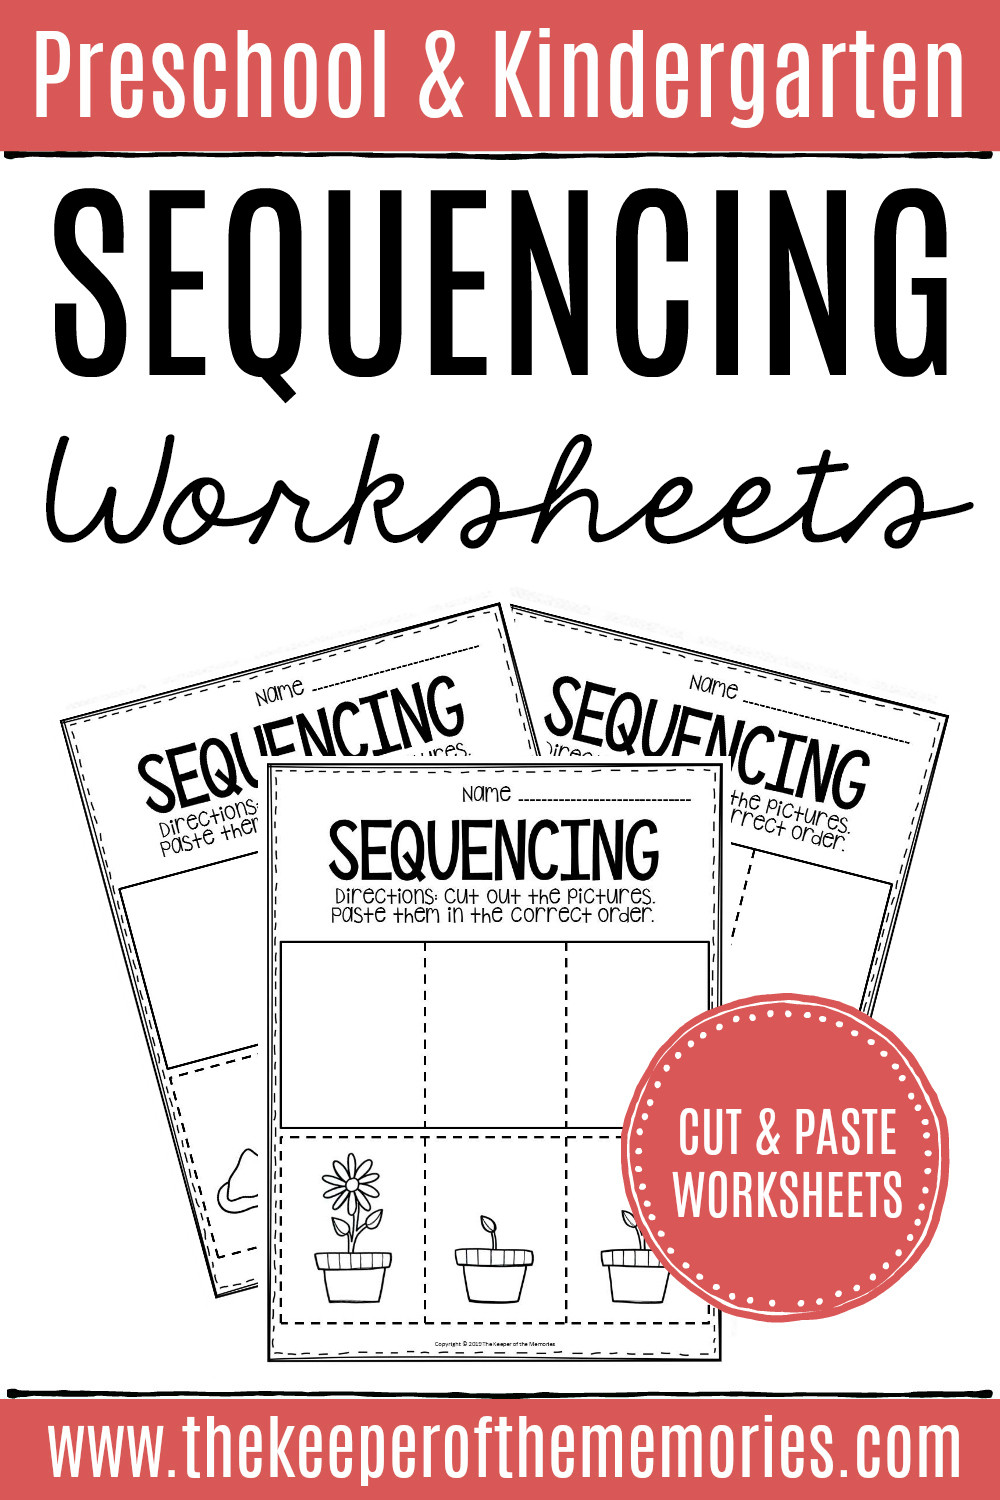 Printable Sequence Worksheets 3 Step Sequencing Worksheets the Keeper Of the Memories